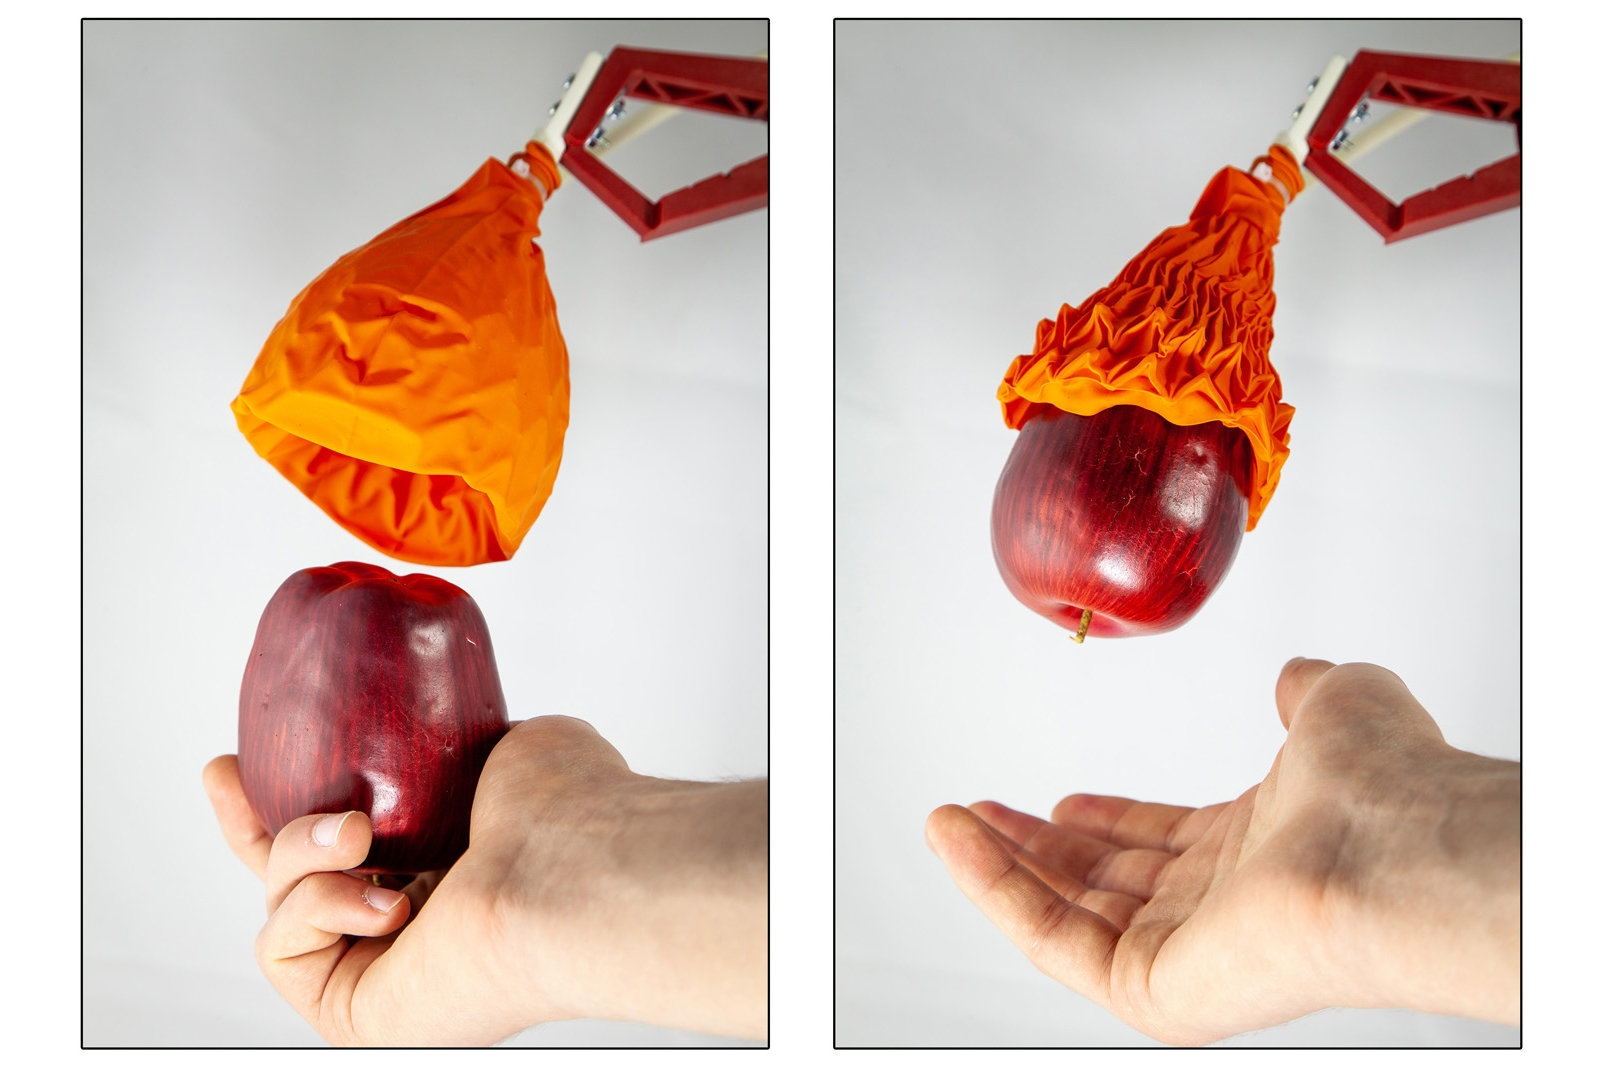 MIT robot's flytrap gripper can grab both fragile and heavy objects | DeviceDaily.com